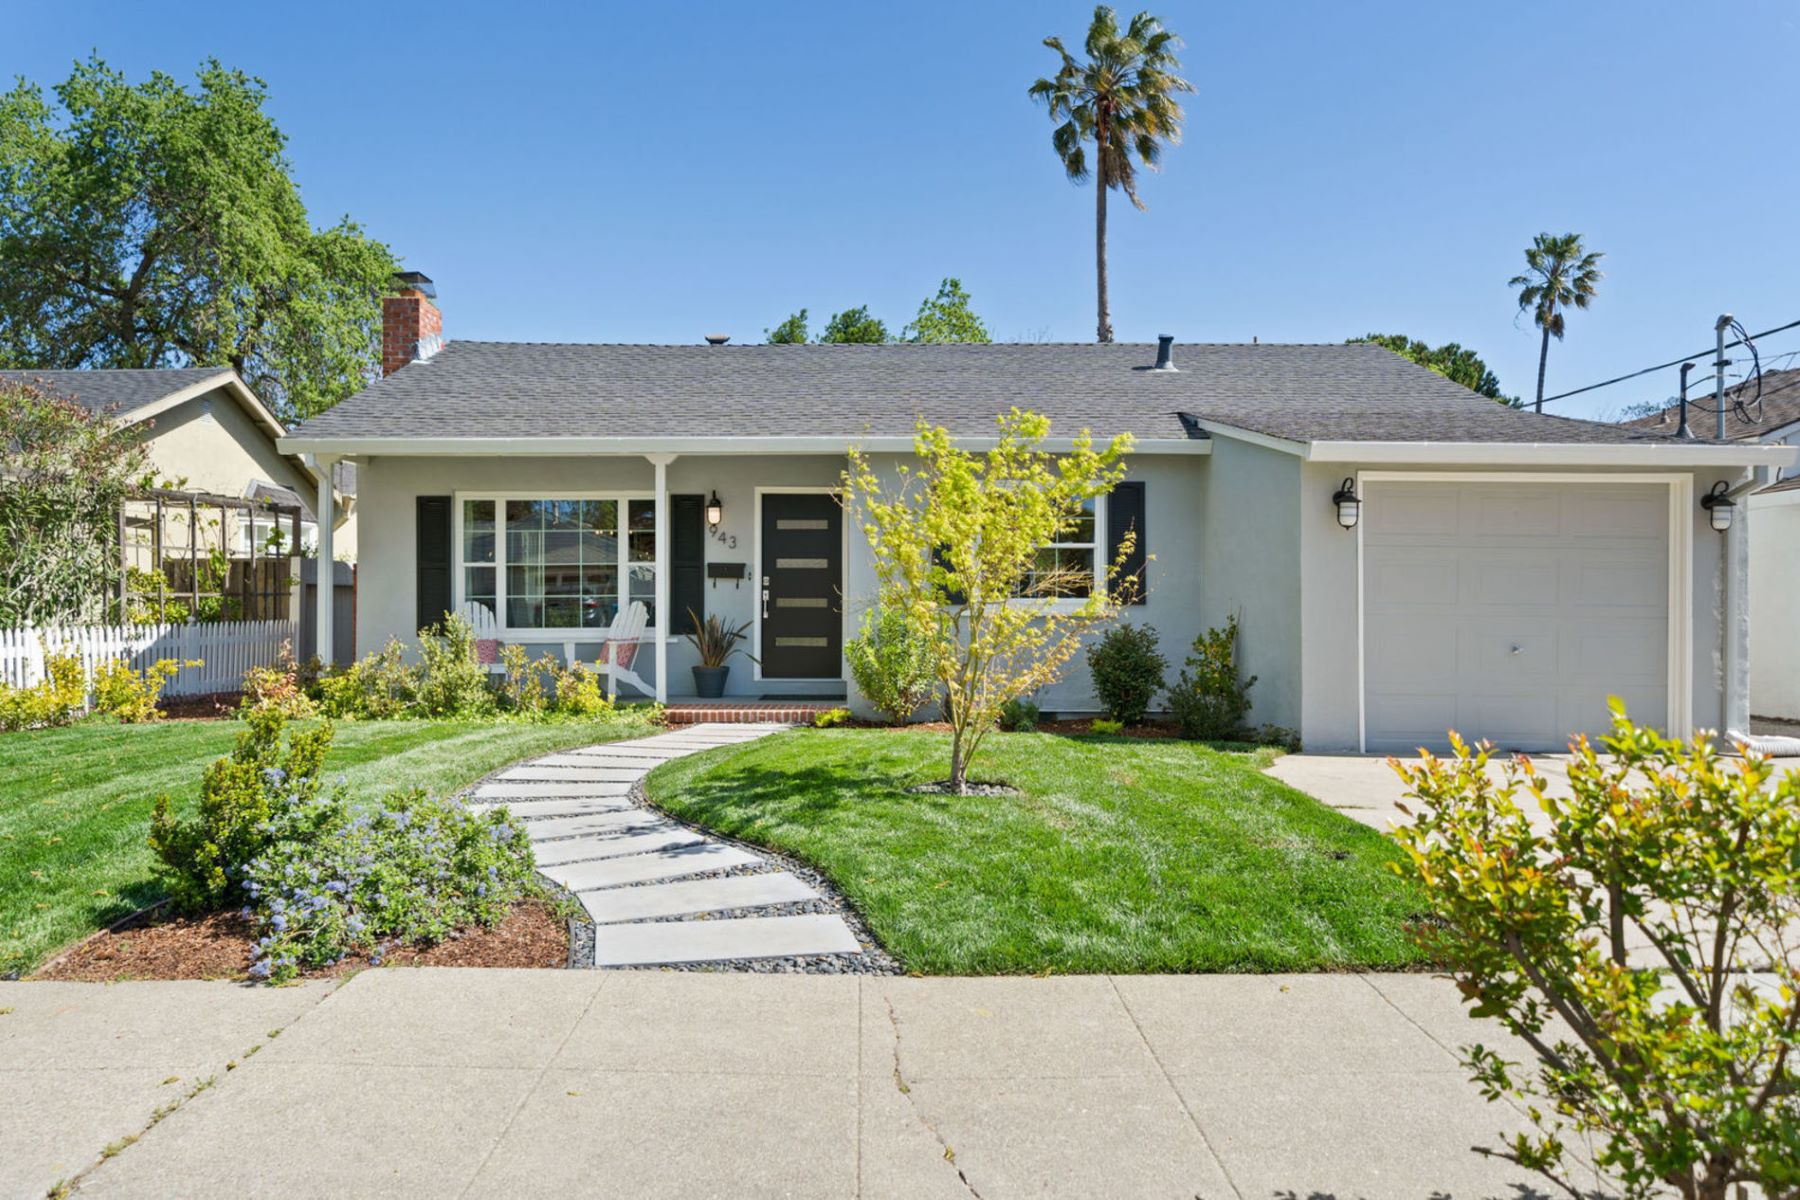 Single Family Home for Active at Graceful Beauty and Captivating Charm 943 Johnson Street Redwood City, California 94061 United States